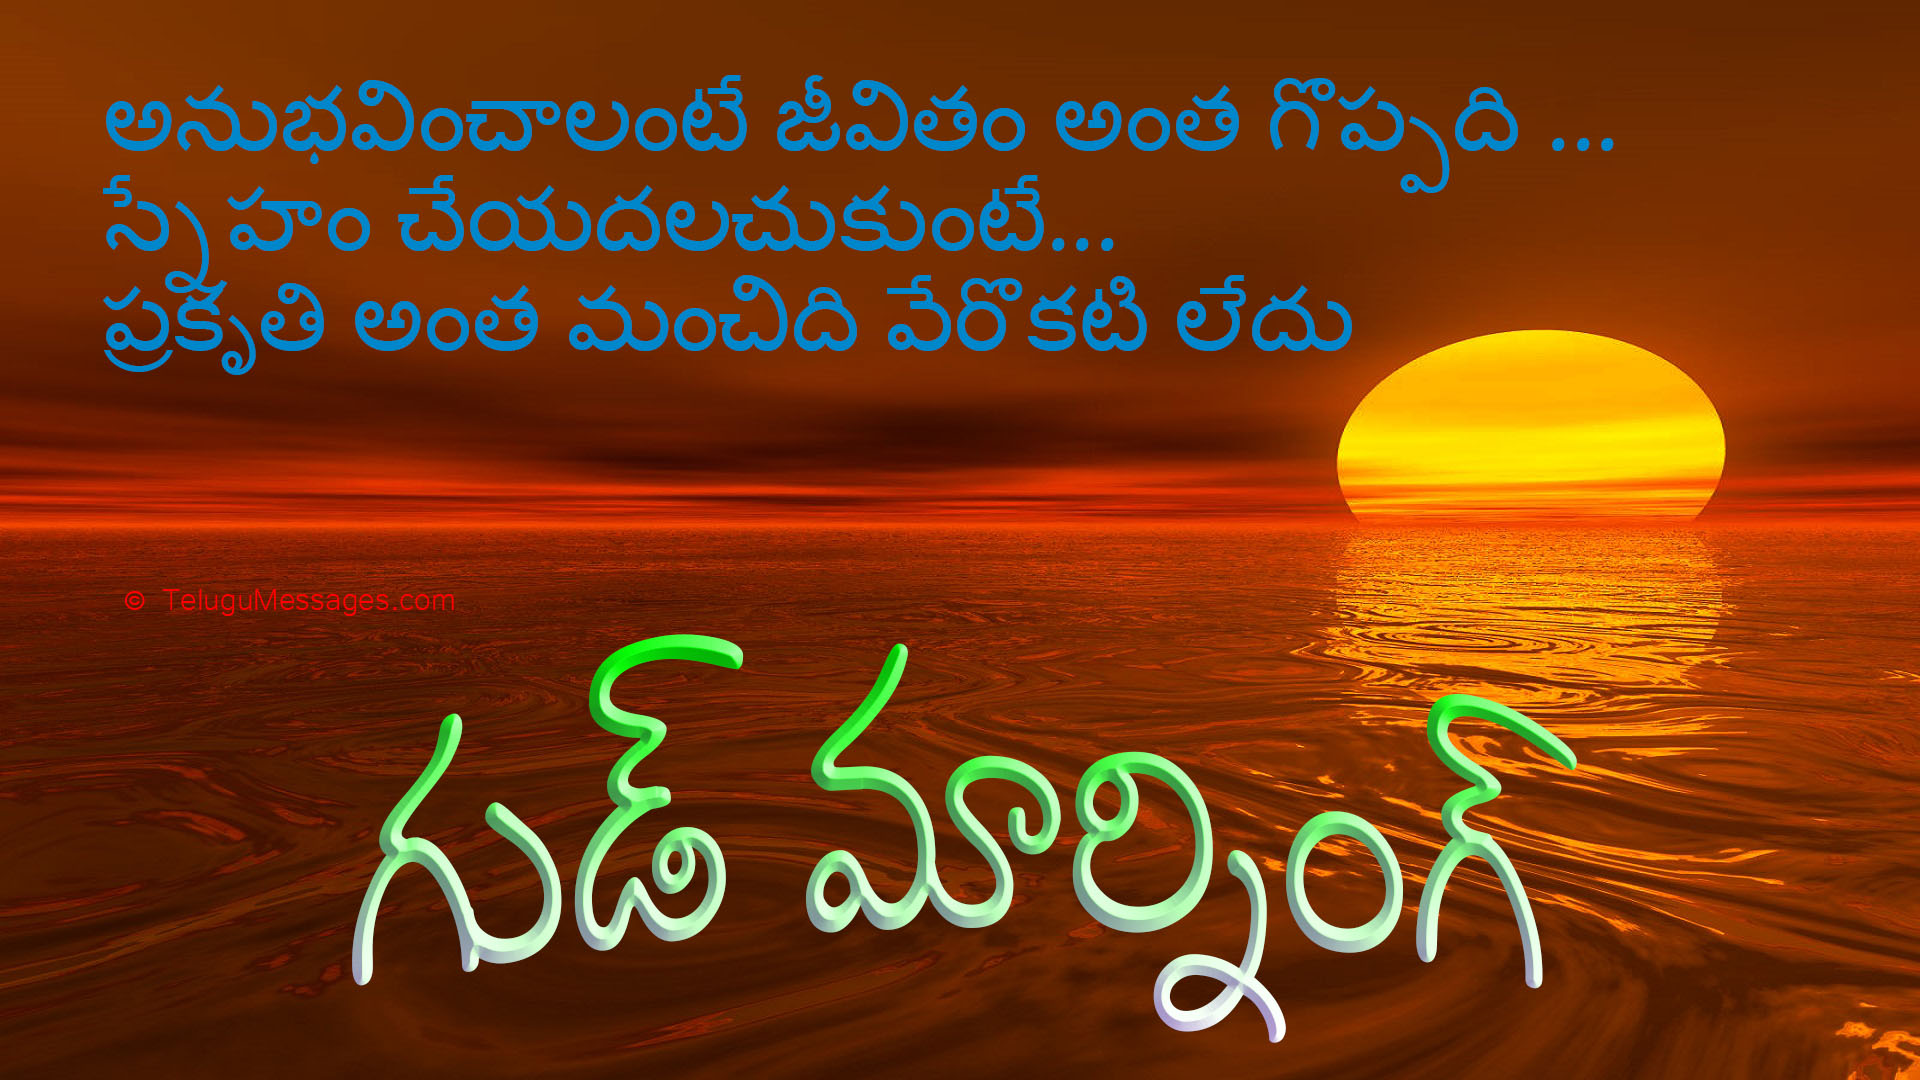 Good Morning Quotes On Life Greatness Friend Nature Goodness